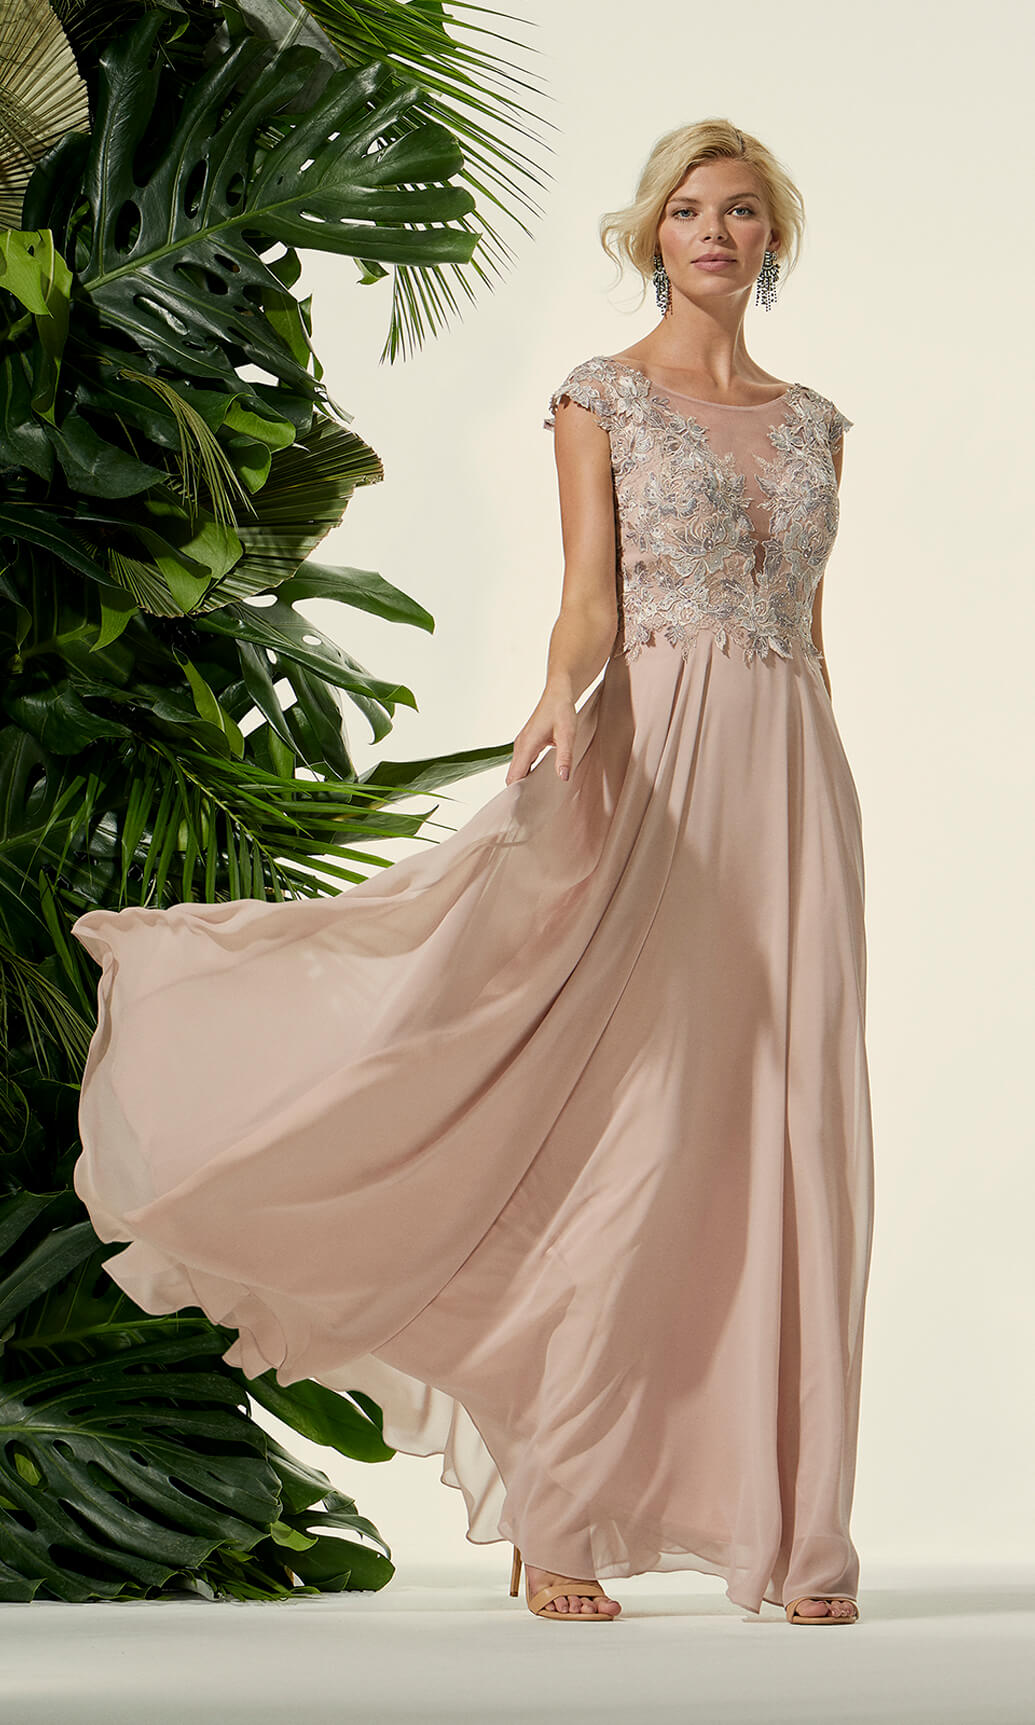 96407 Rosa Carla Ruiz Long Occasion Dress - Fab Frocks